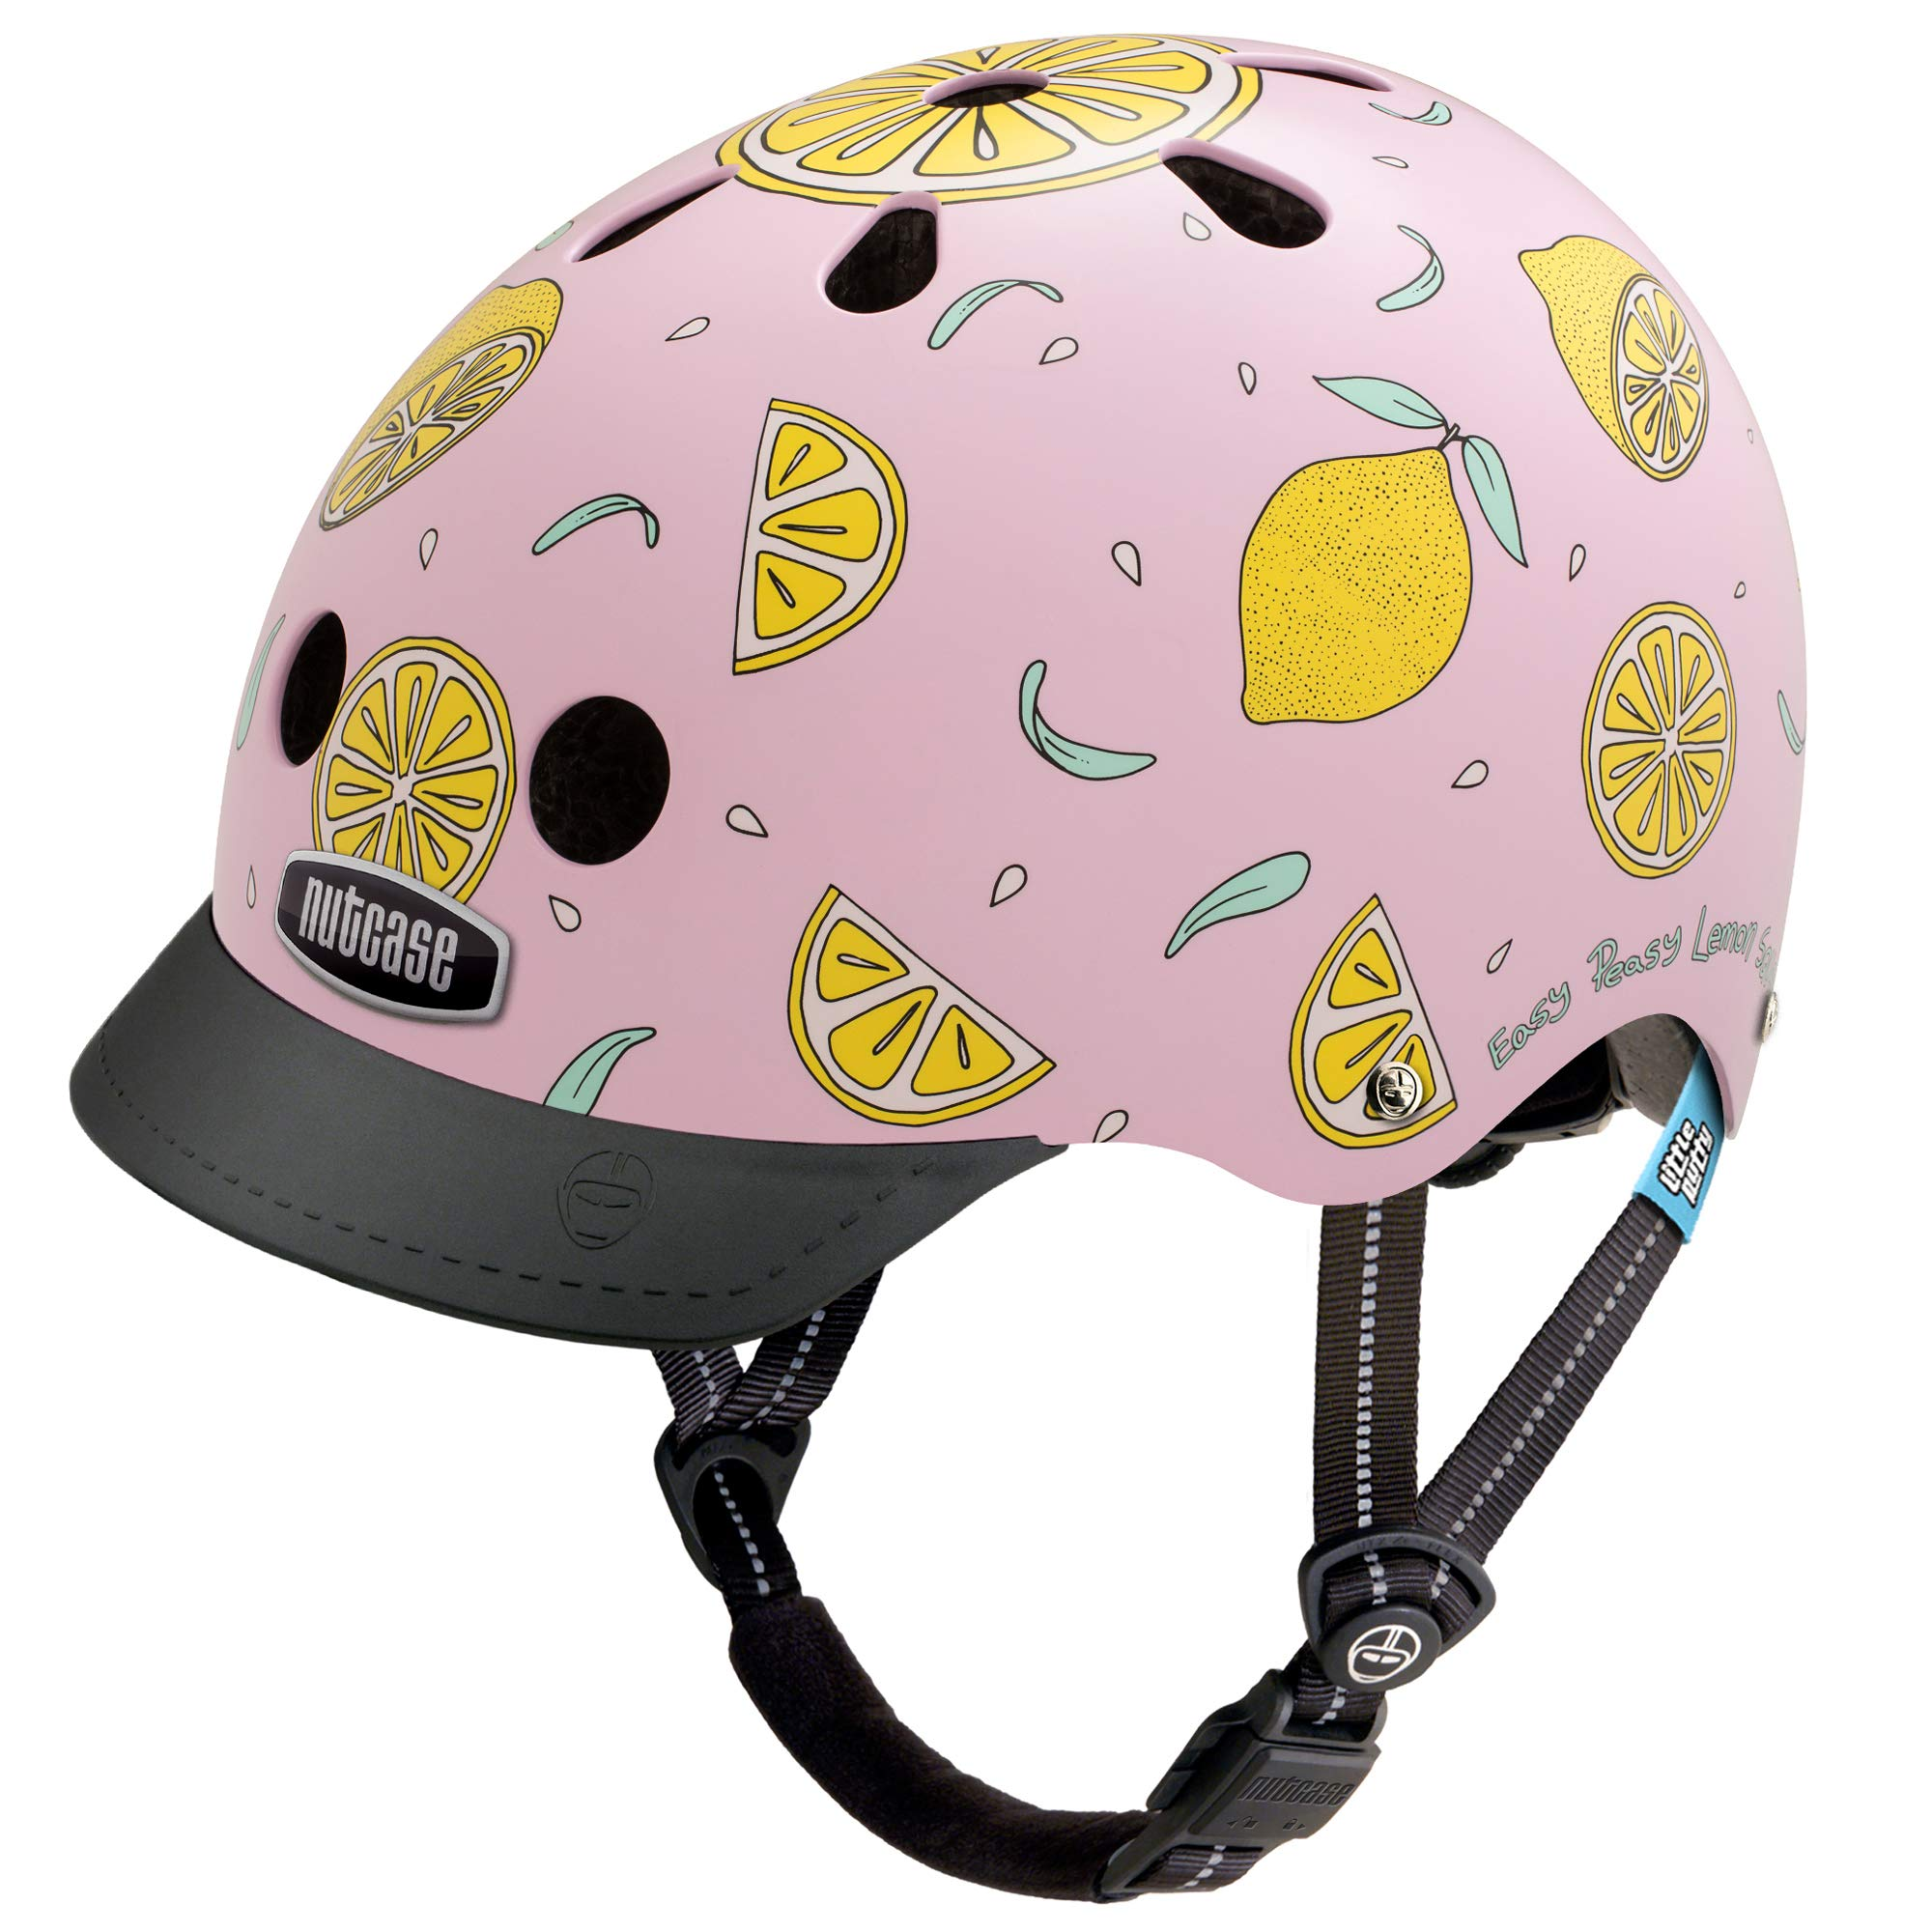 Nutcase Little Nutty Bike Helmet for Kids,Pink Lemonade,X-Small